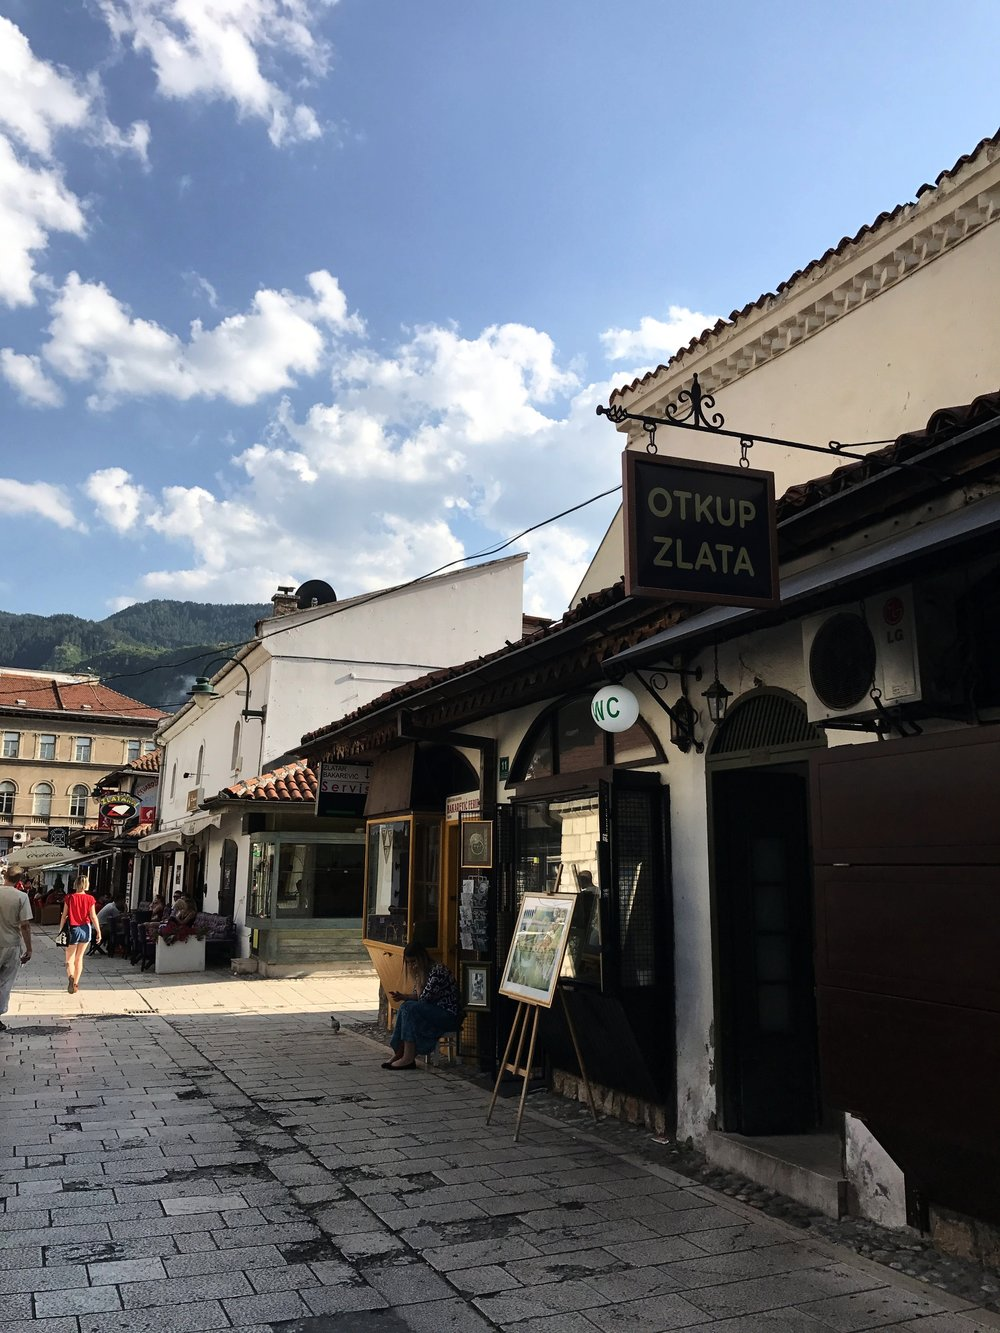 Fun fact: Sarajevo has the world's oldest public restroom, dating back to 1530.